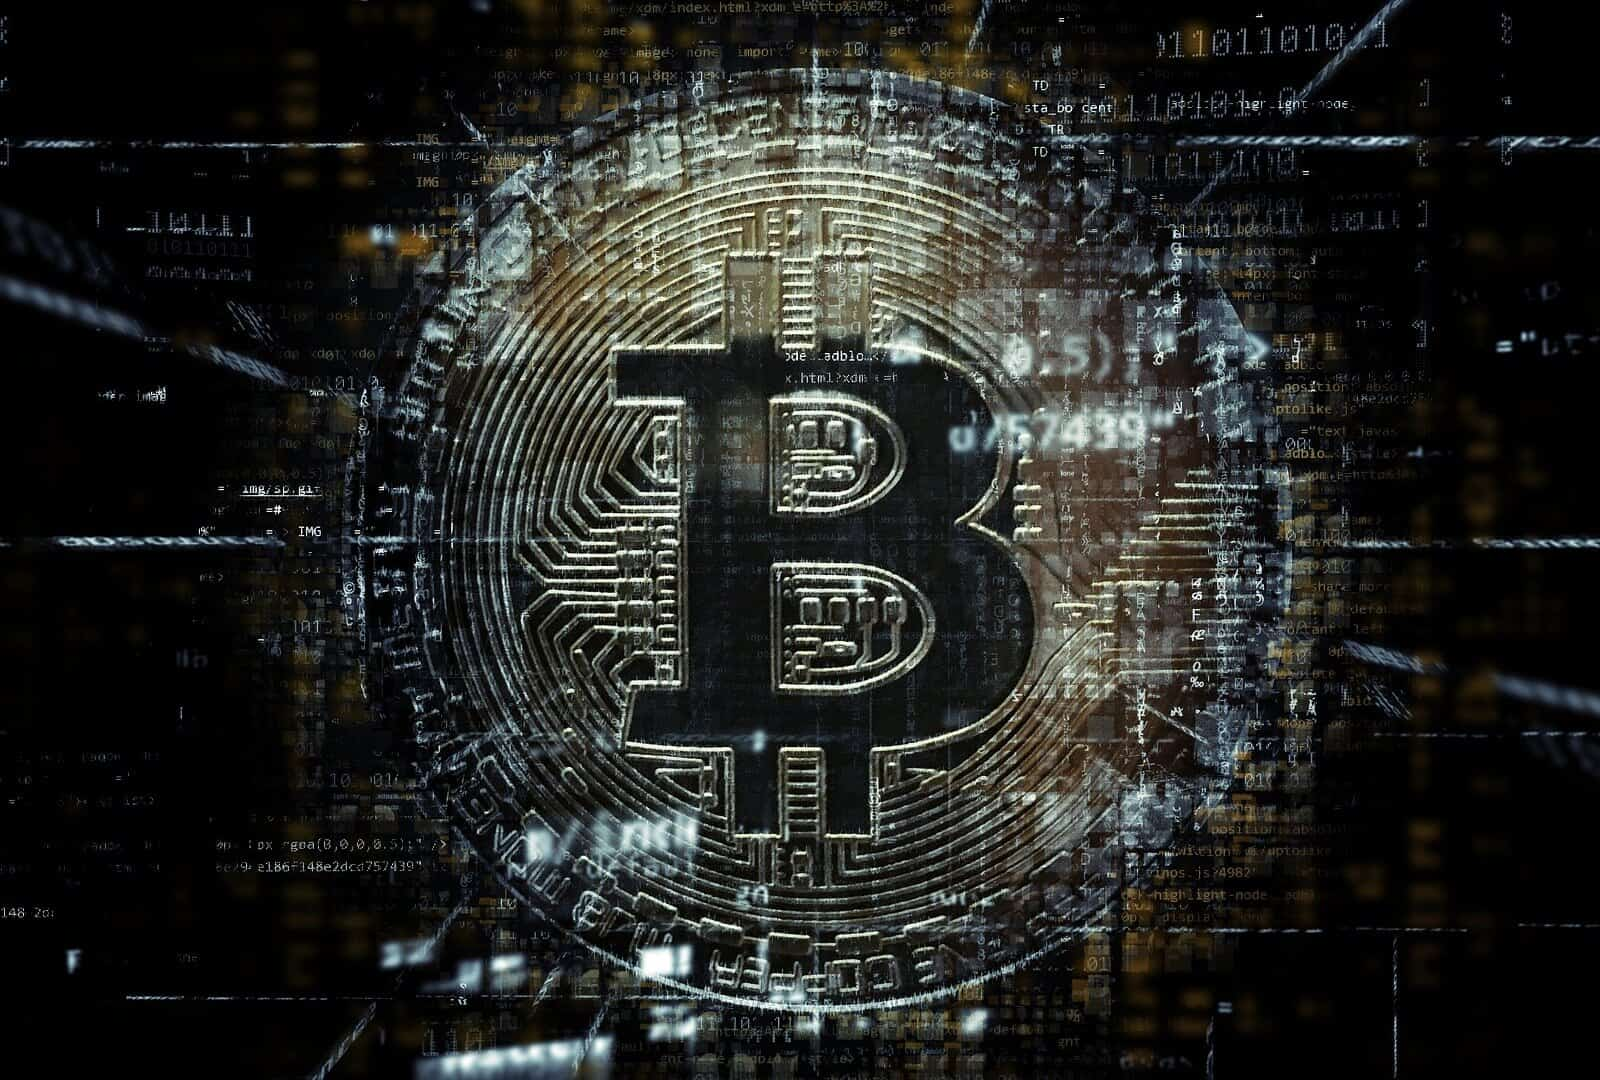 20+ Bitcoin scams and how to spot and avoid them | Comparitech